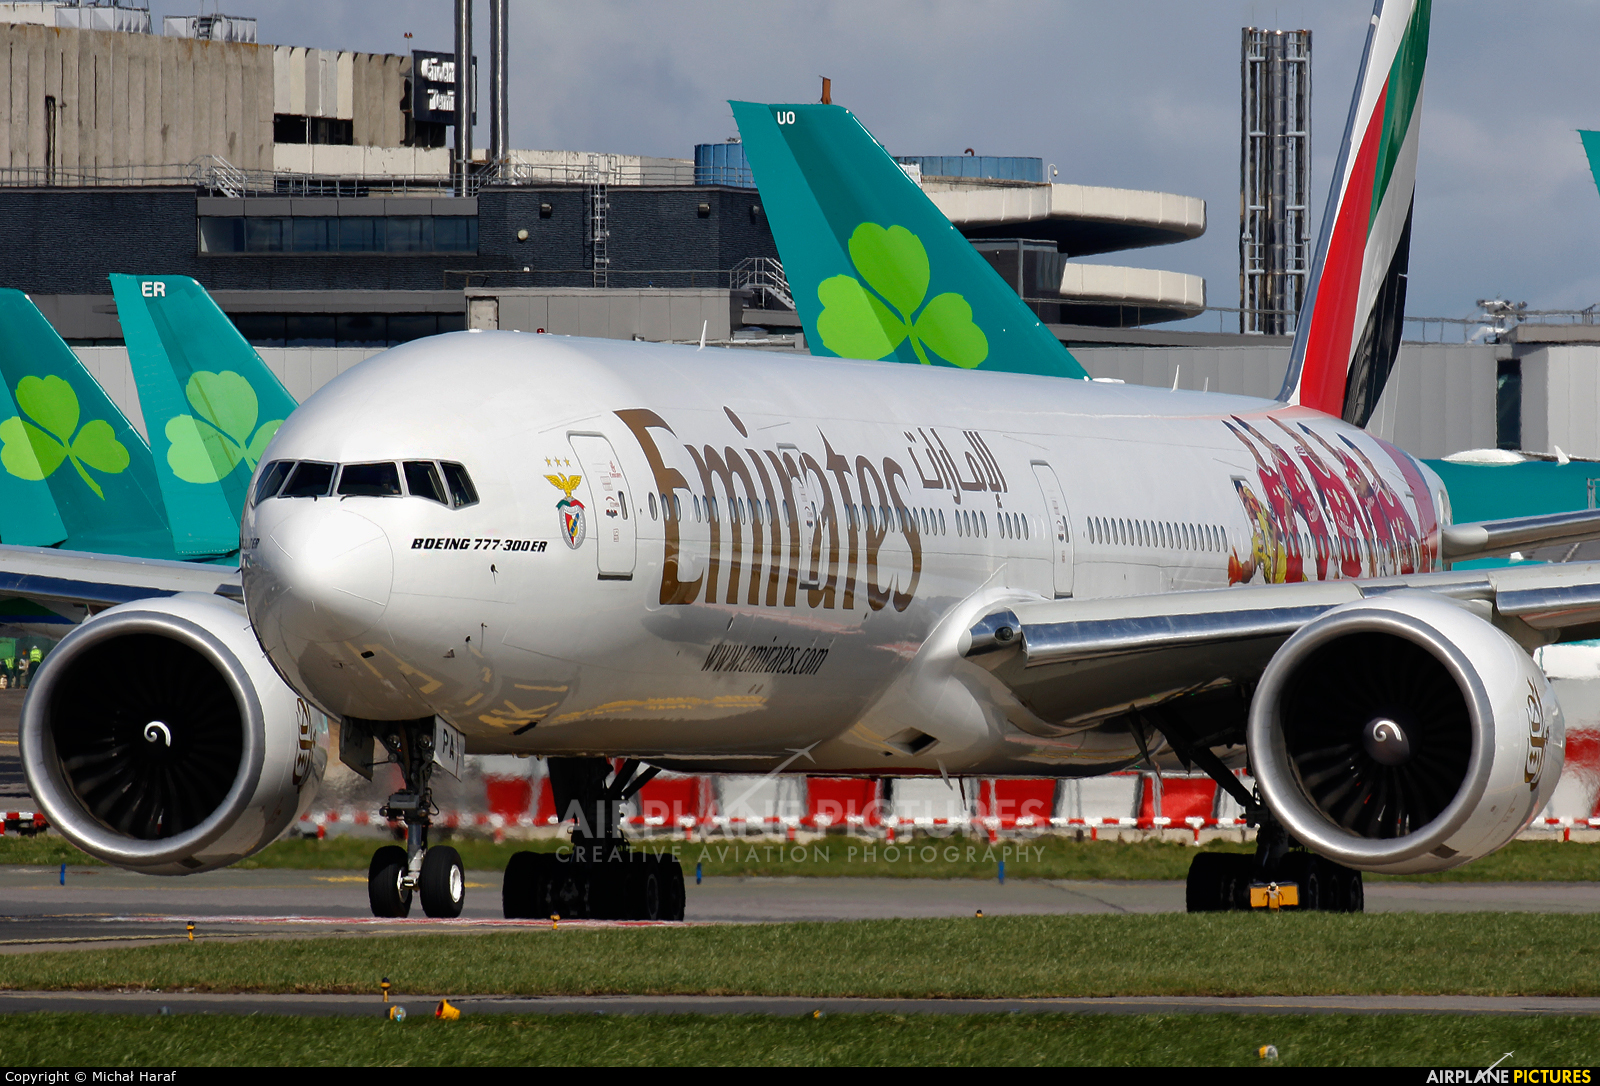 Emirates Airlines A6-EPA aircraft at Dublin